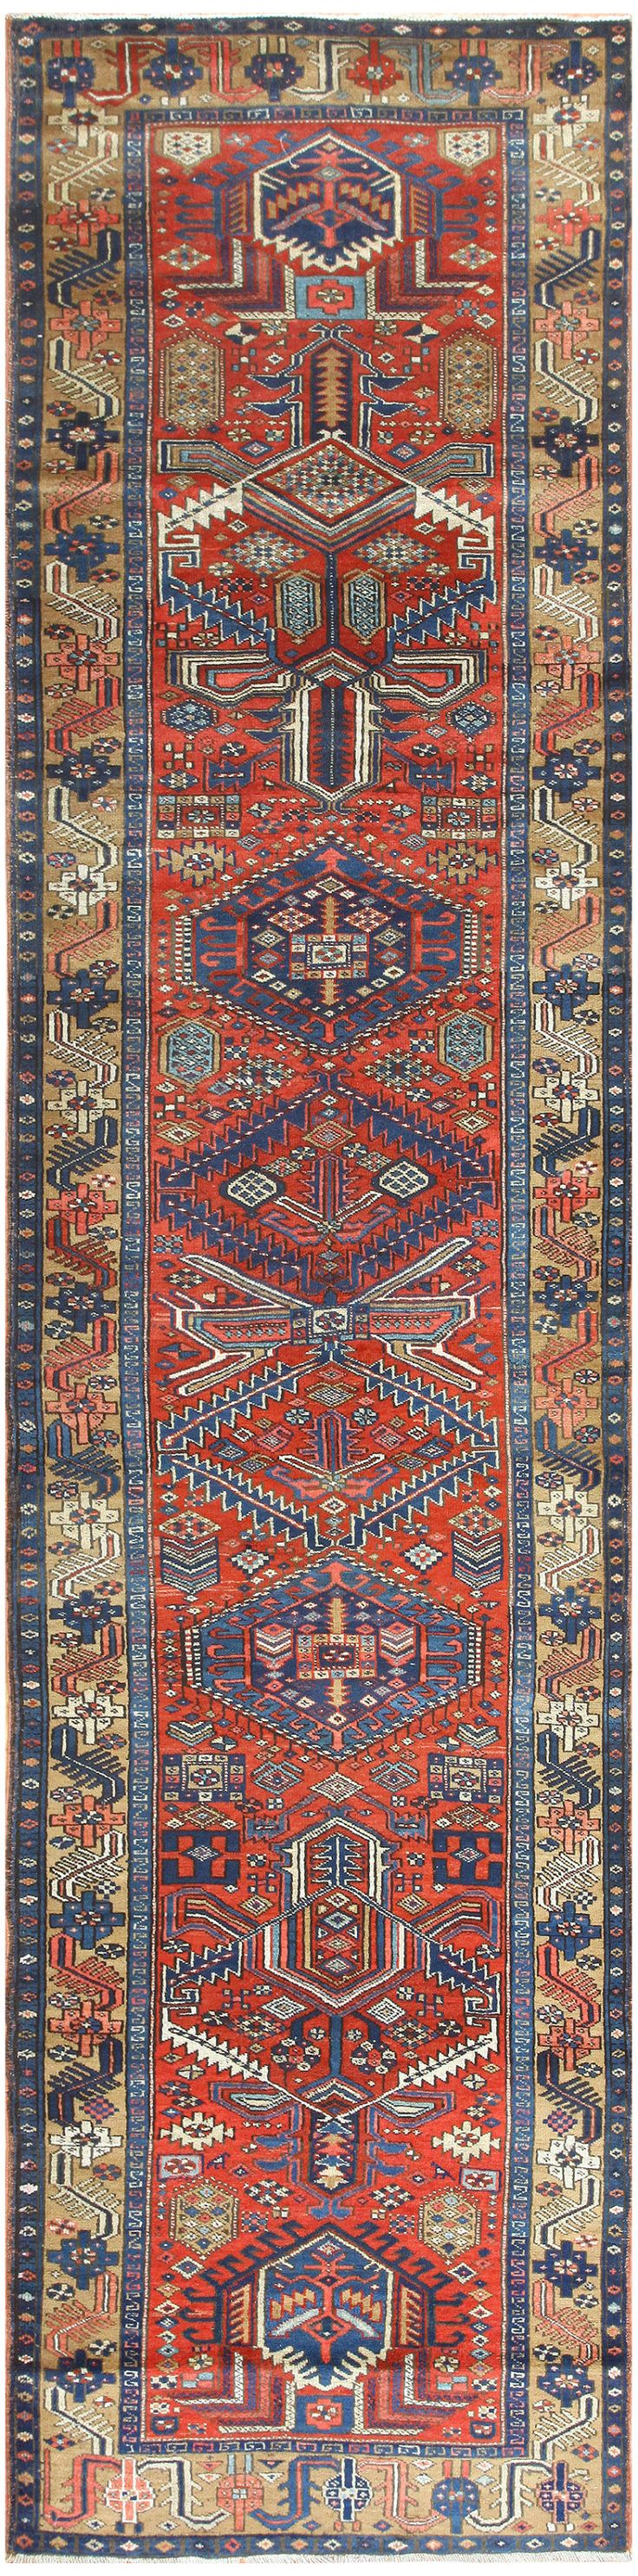 nisha tribal plush sale inch at price x red remu ft shoppypal multi discount southwestern rug com c htm rugs